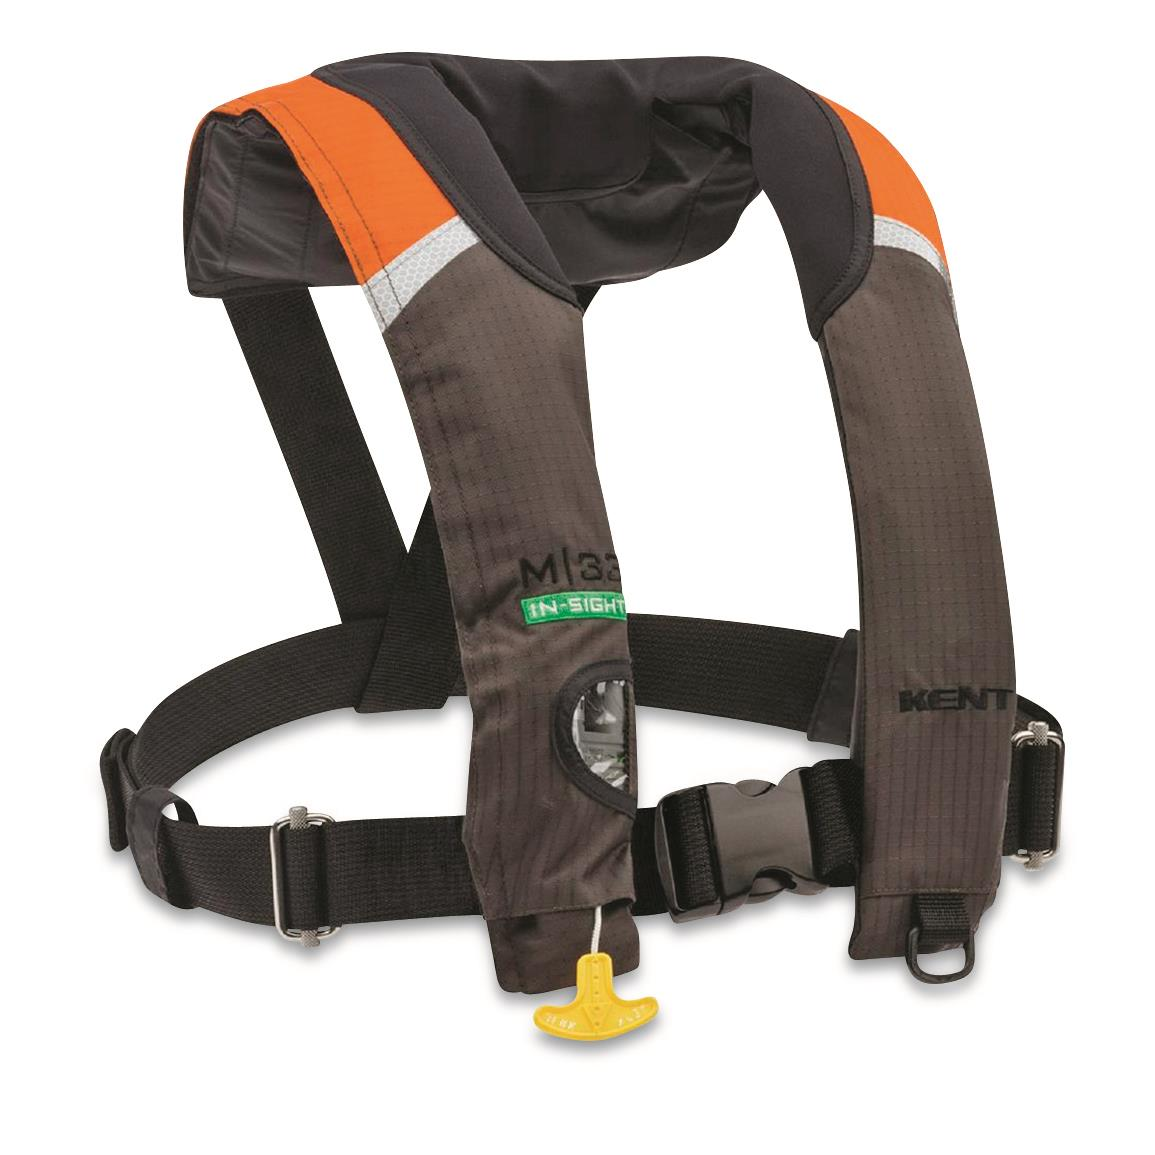 Kent M-33 Manual Inflatable Life Jacket, Orange